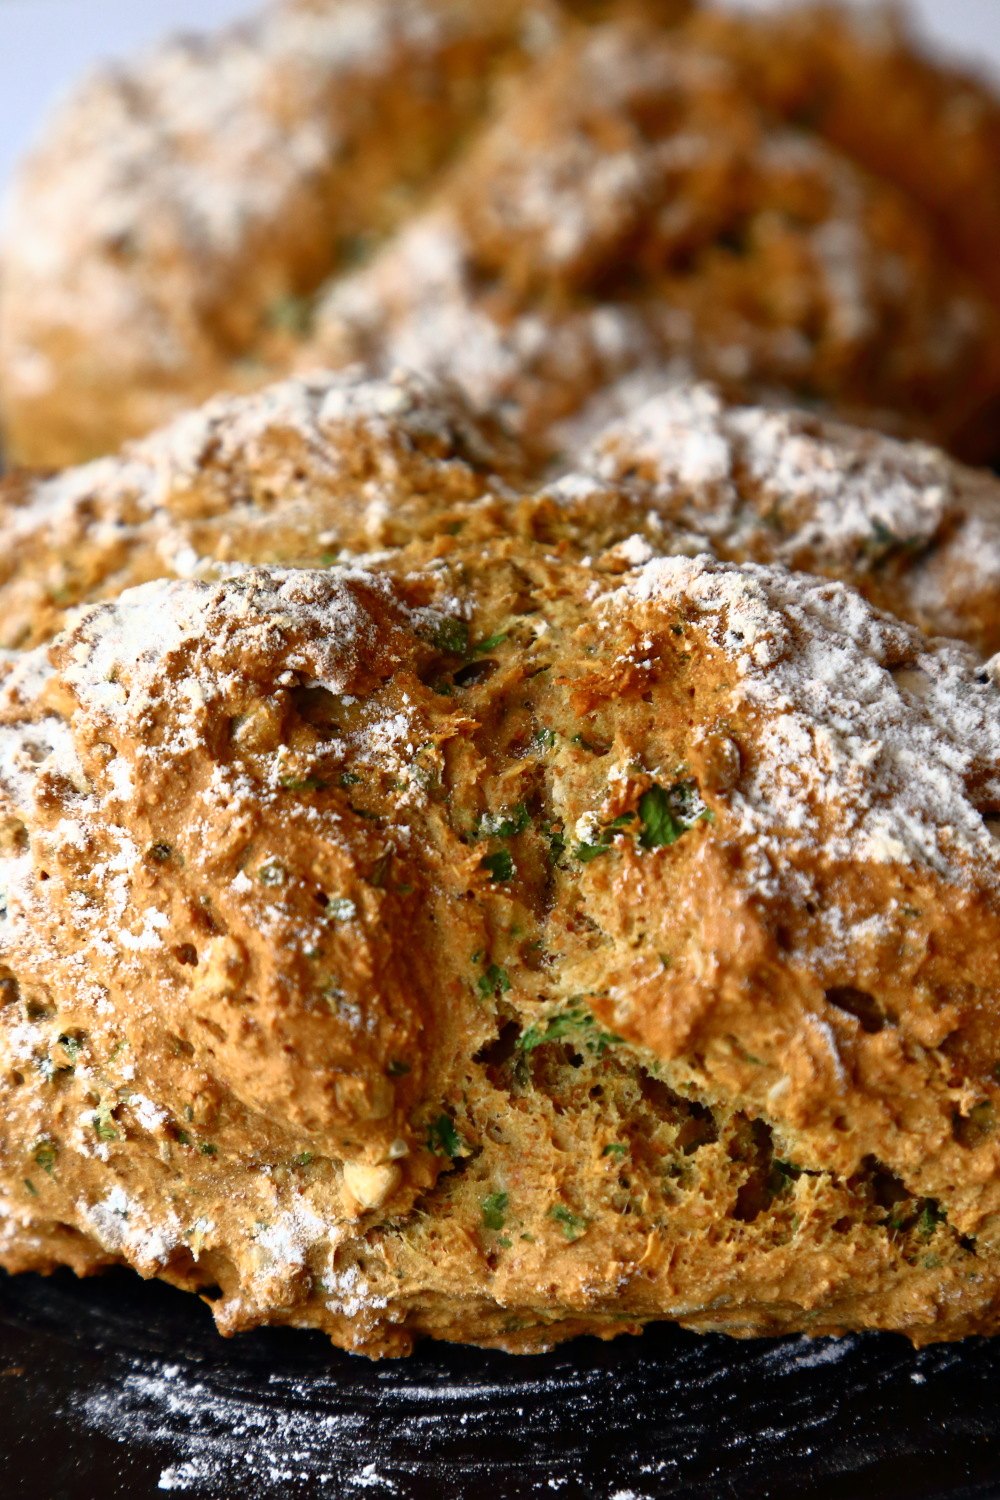 Close up of vegan soda bread showing the texture and rise.